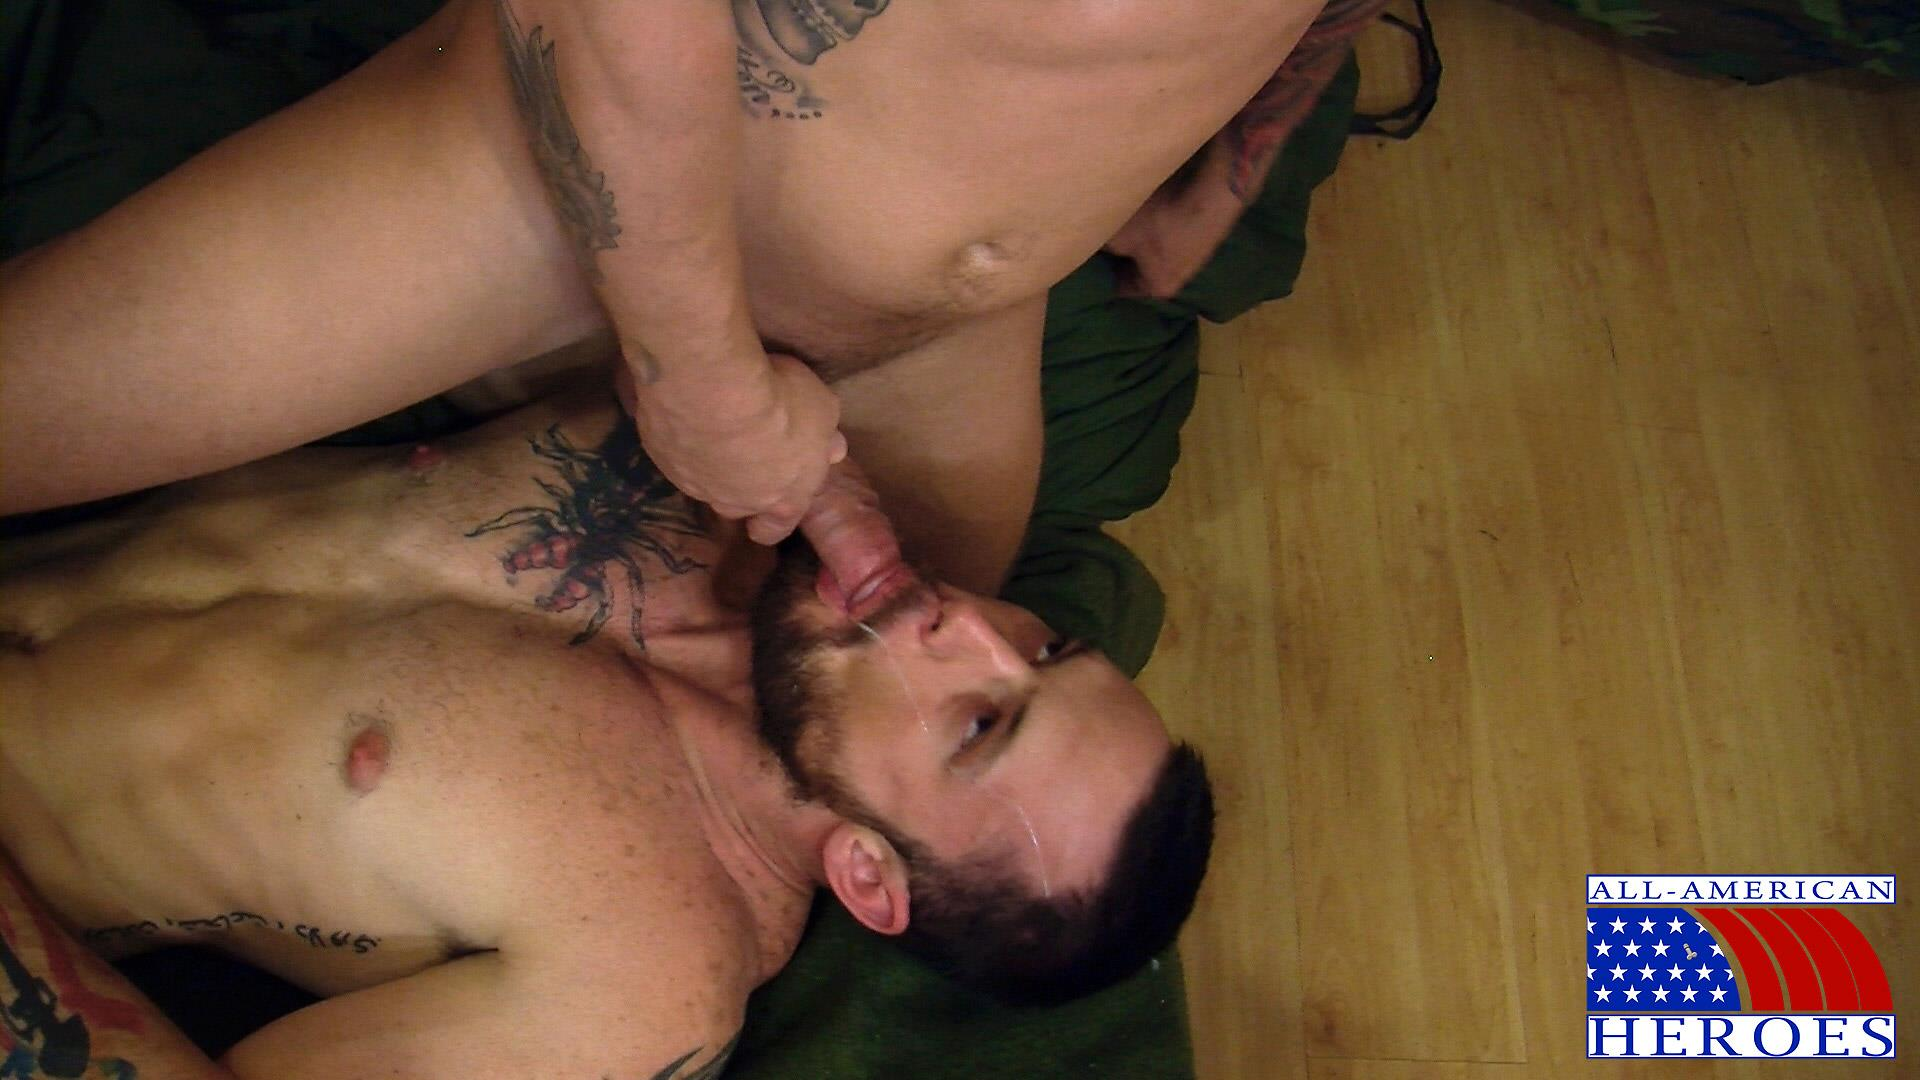 All-American-Heroes-PRIVATE-TYLER-FUCKS-SERGEANT-MILES-Army-Military-Amateur-Gay-Porn-15 Hung Amateur US Army Private Barebacking an Army Sergeant